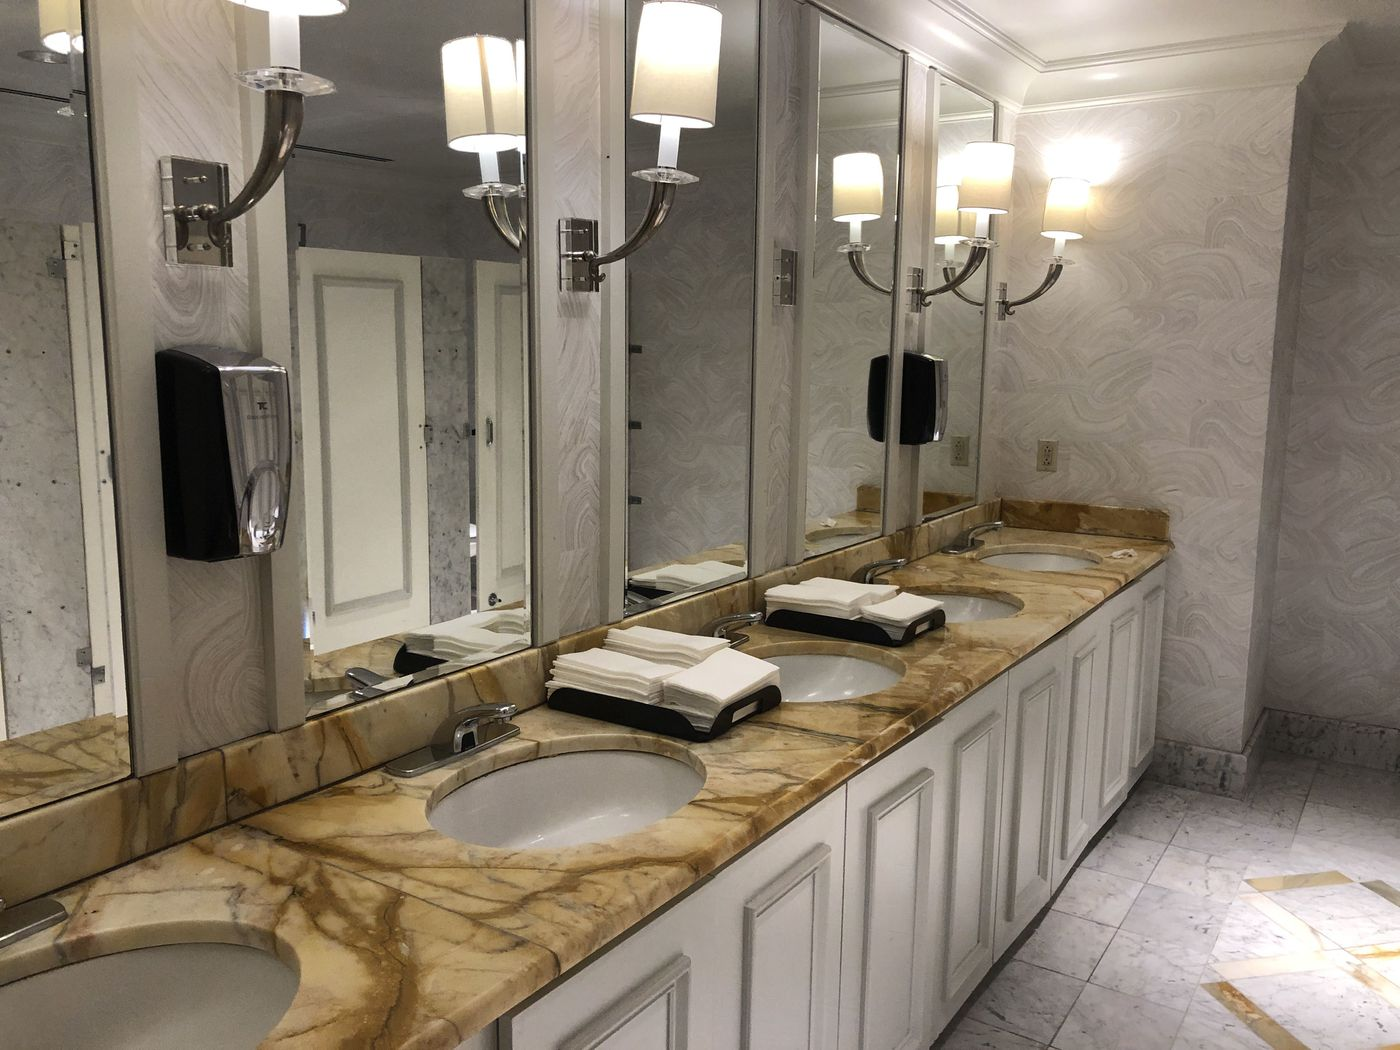 The Best Restrooms In Philadelphia That You Can Use Without Buying Anything